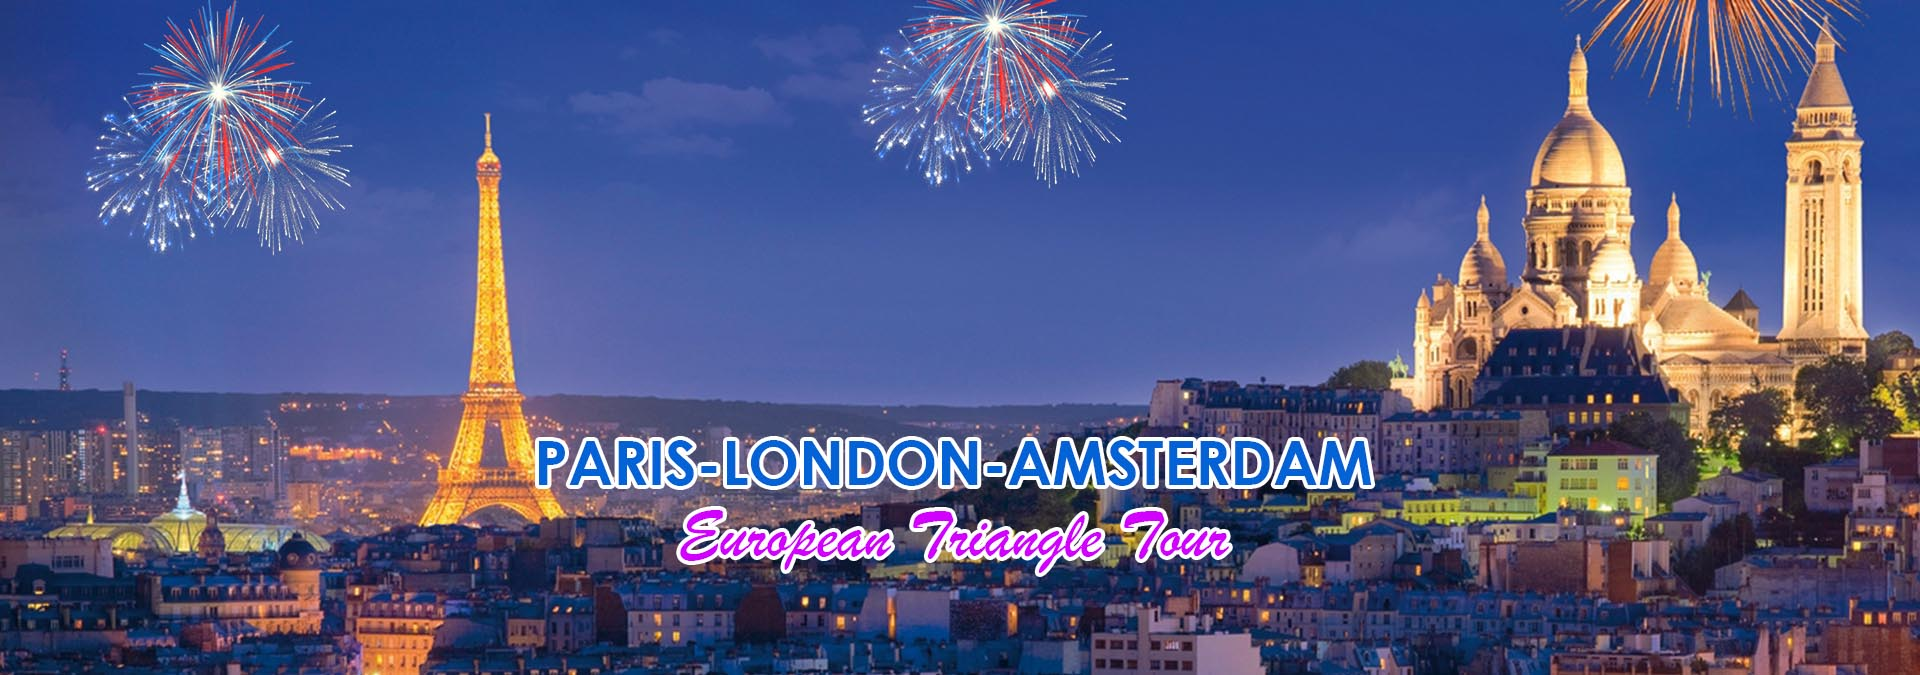 London Local Tour Packages